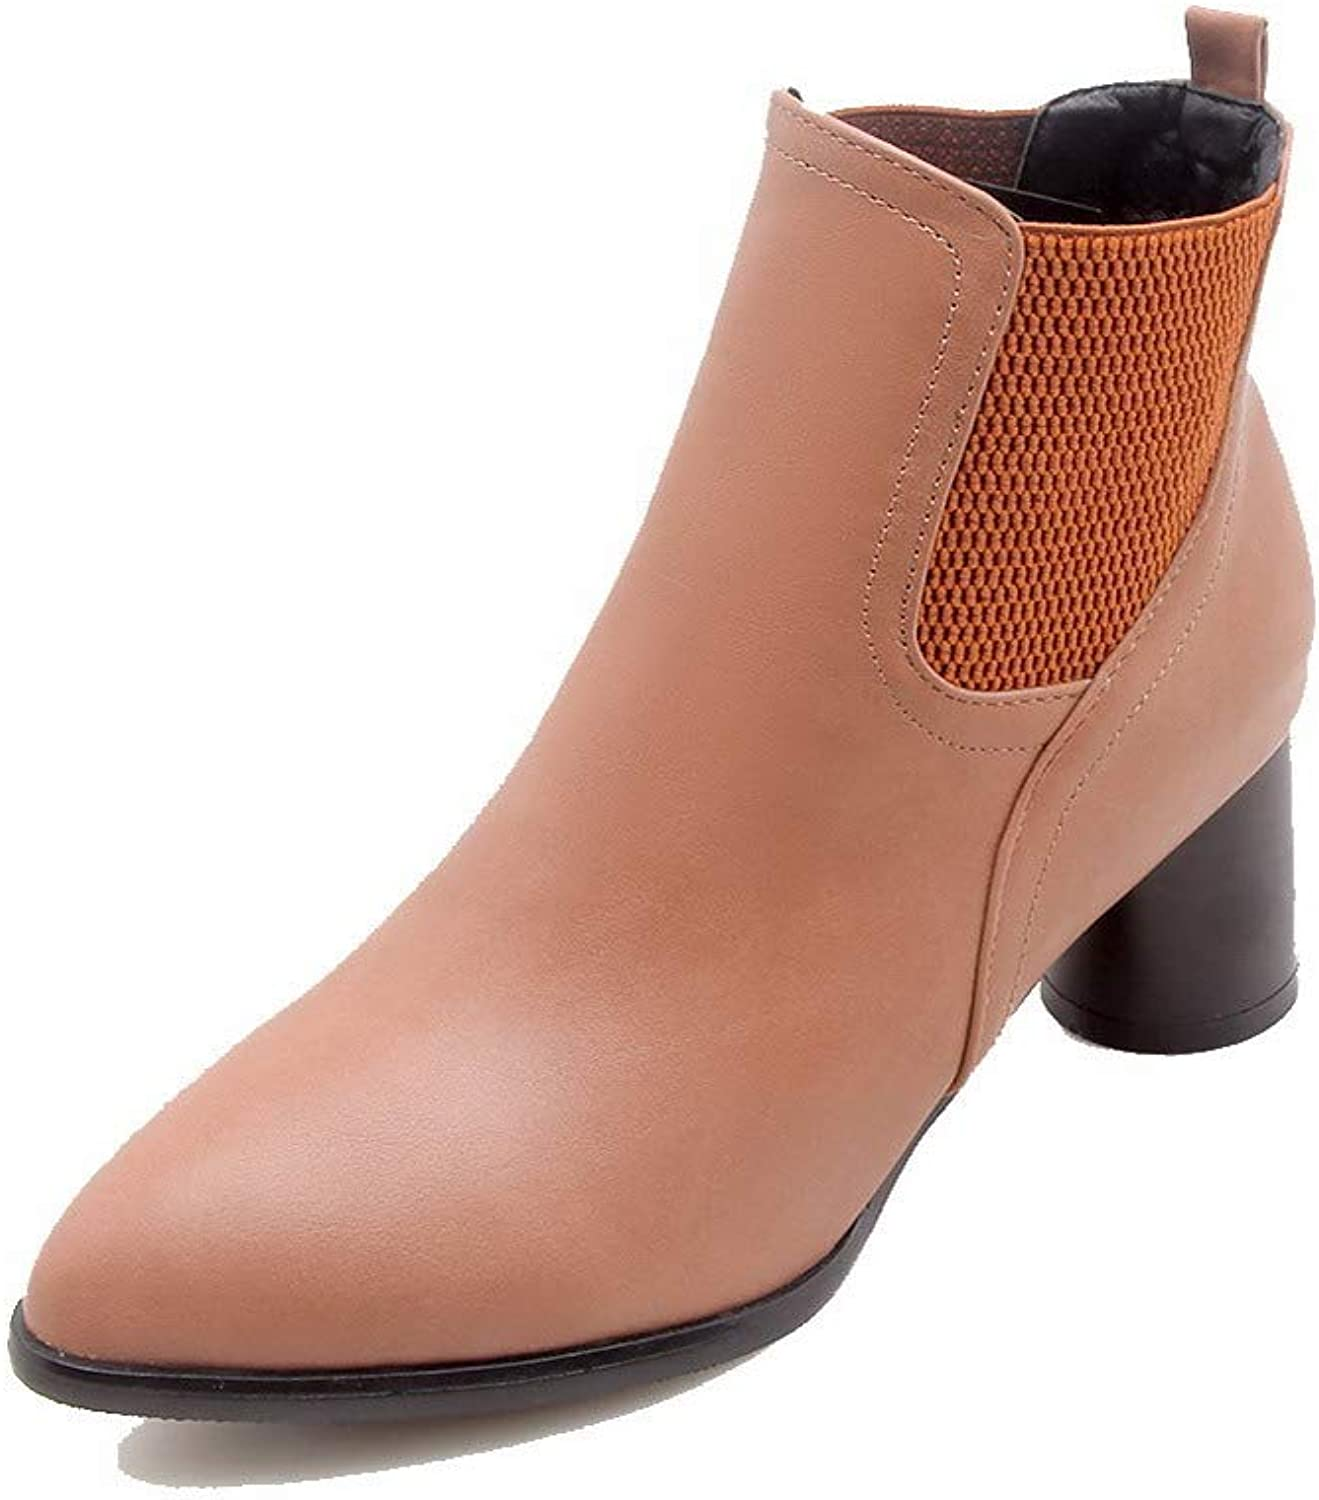 WeiPoot Women's Pointed-Toe Kitten-Heels Pu Ankle-High Solid Boots, EGHXH108280